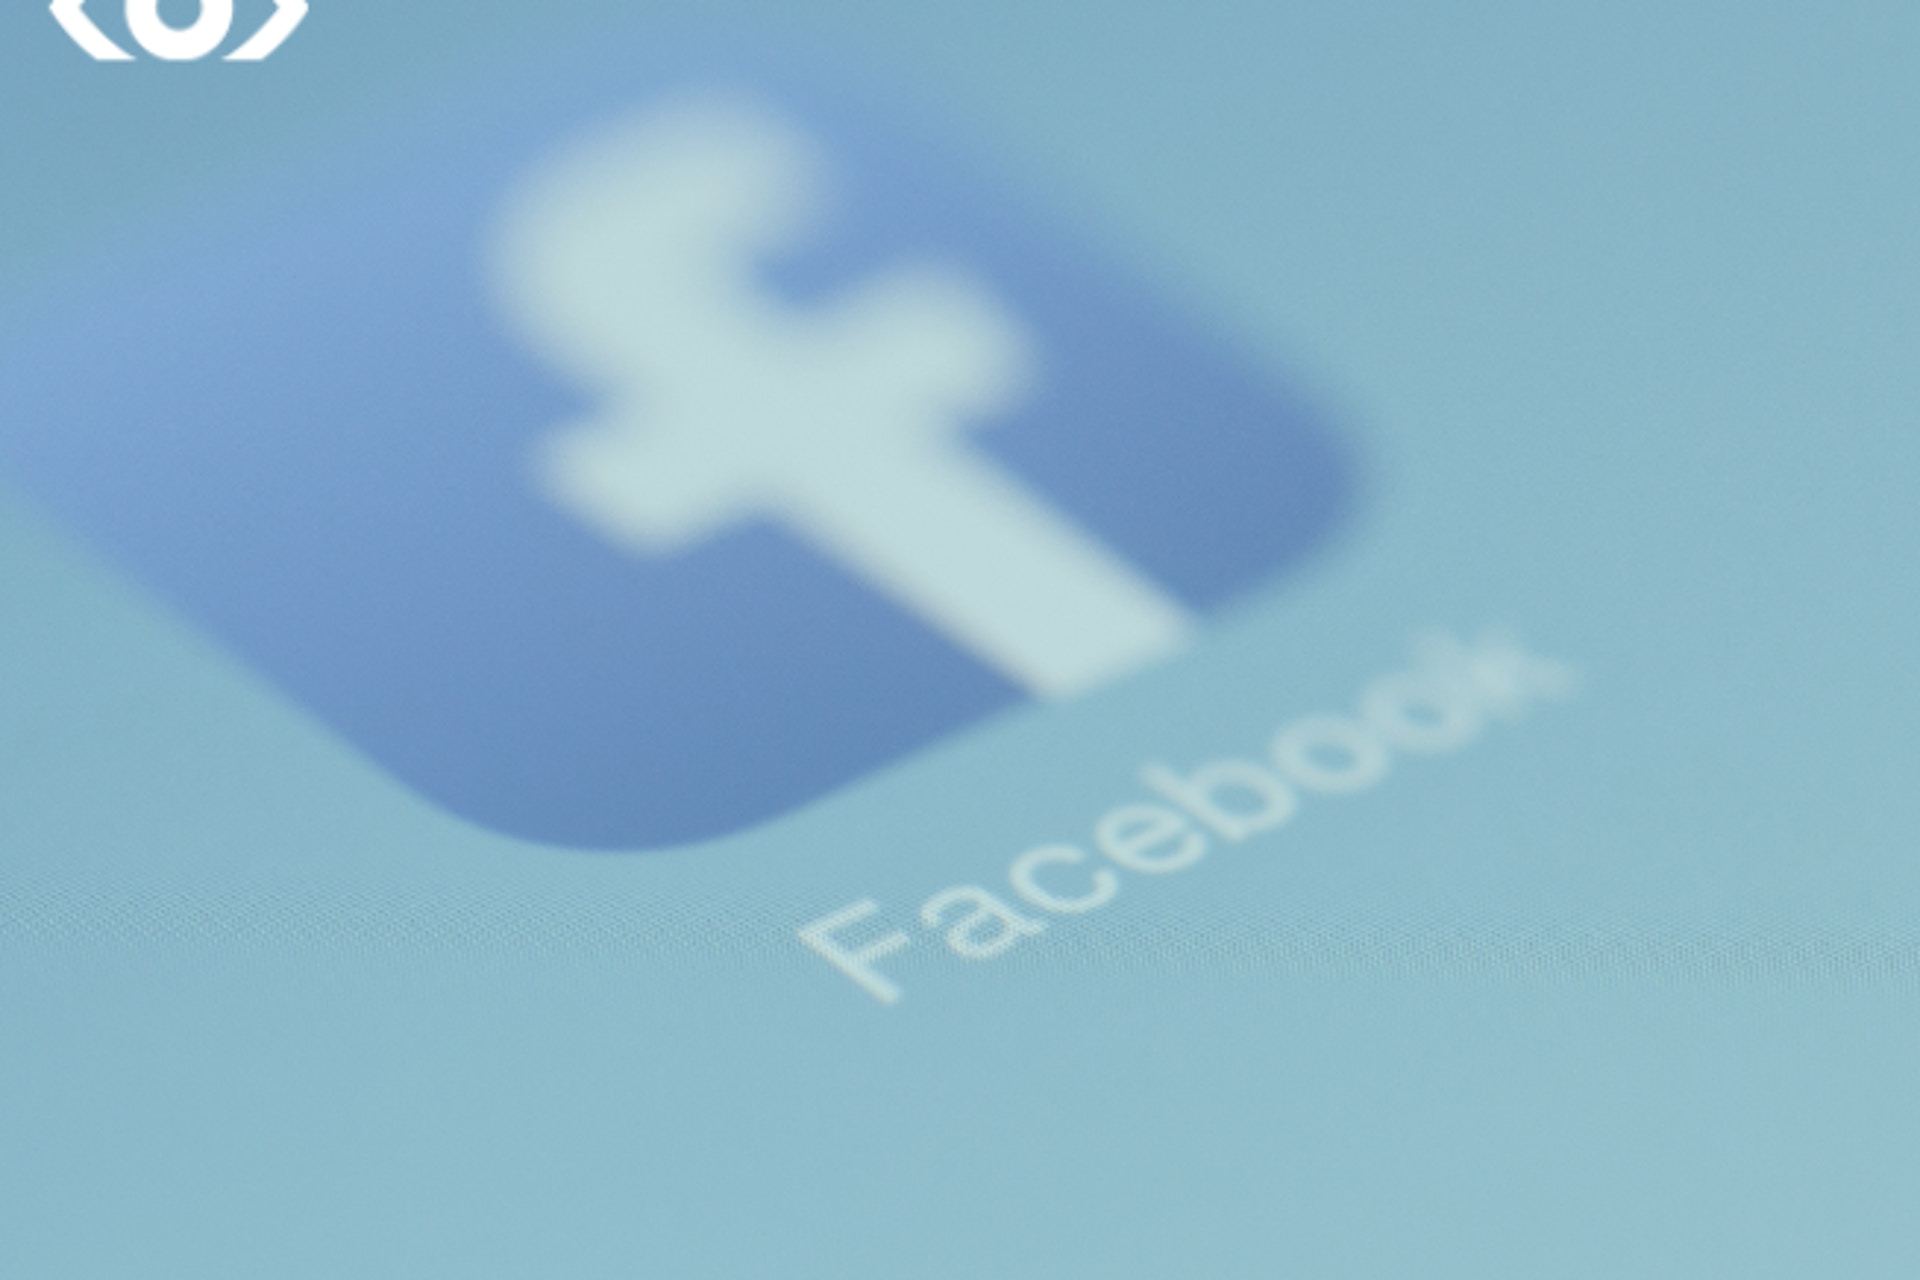 Diagonal Facebook logo on blue background with meltwater overlay.